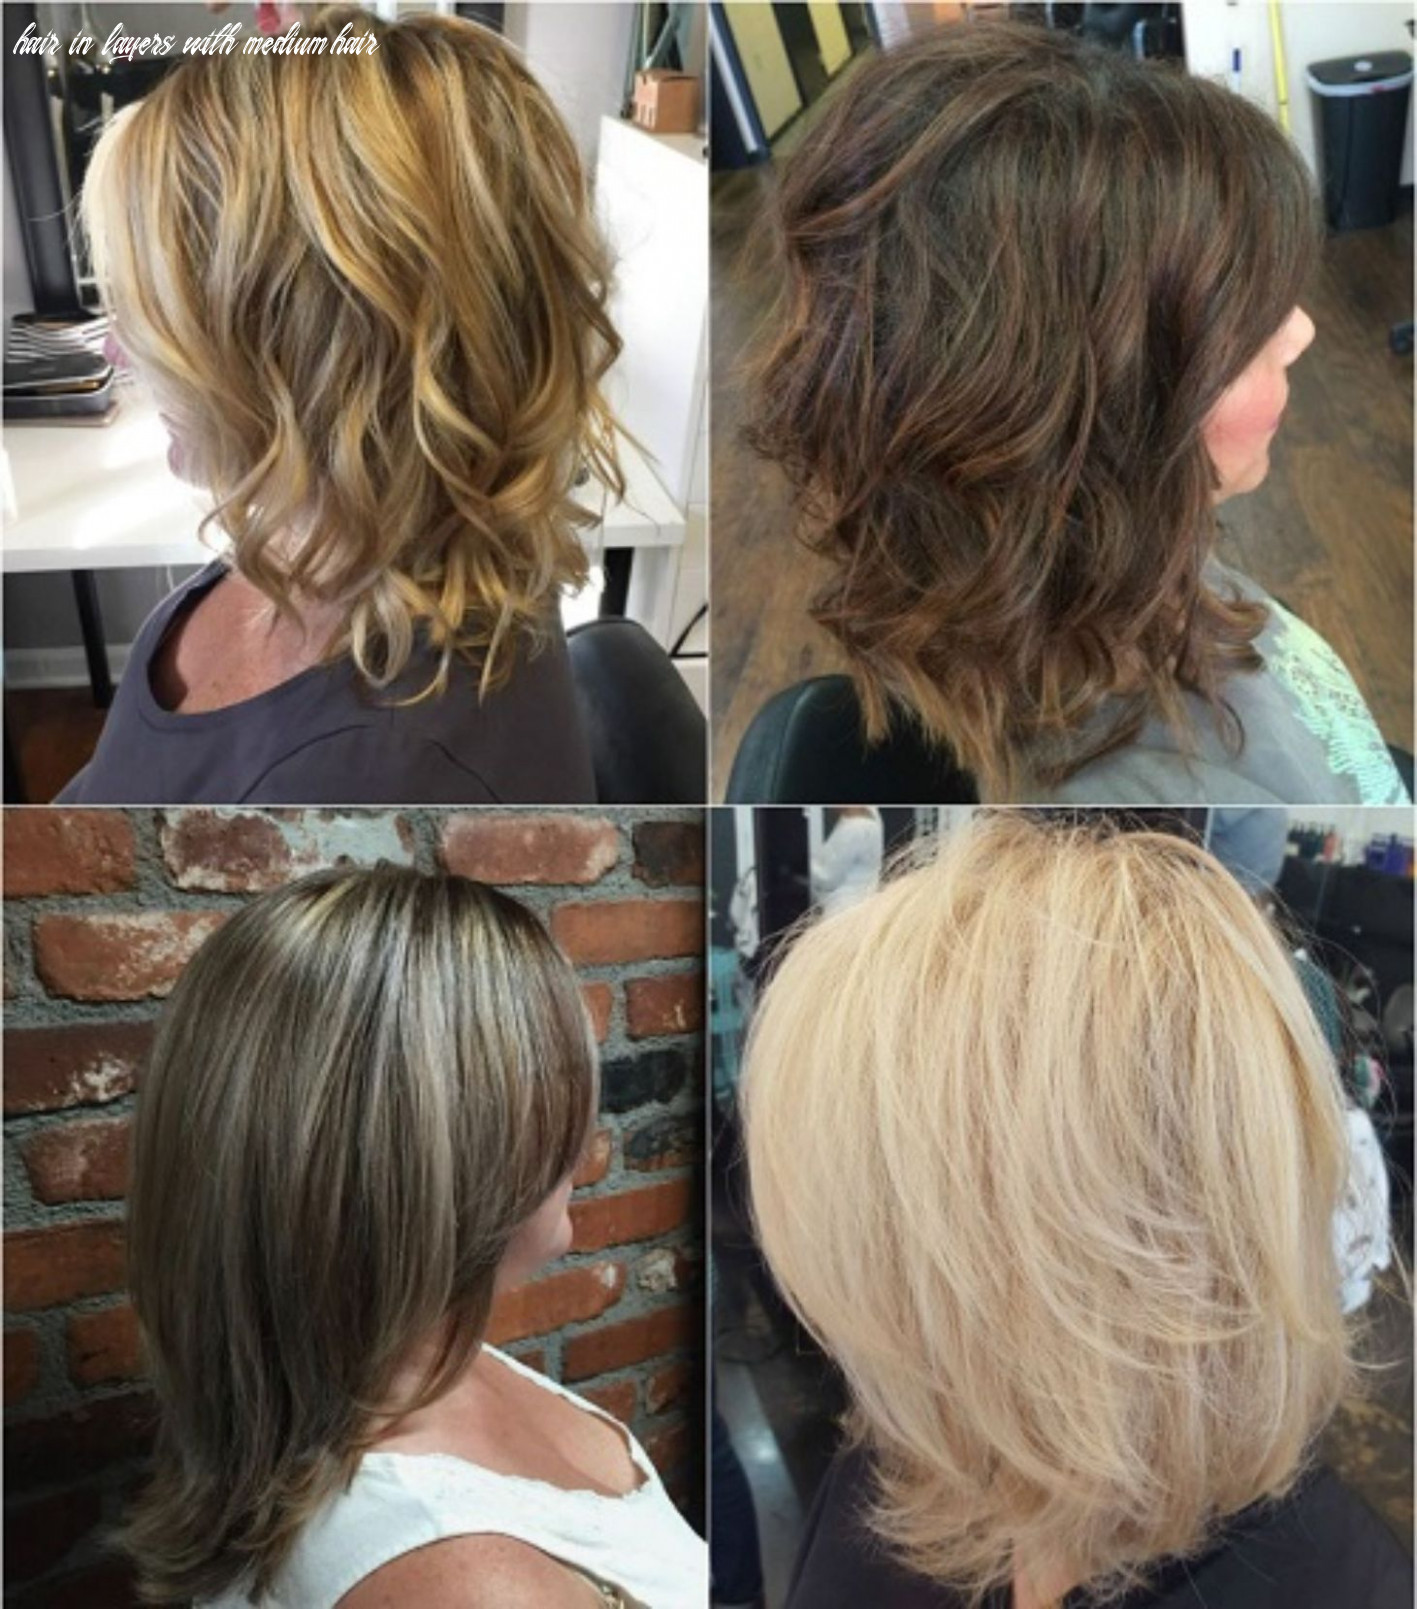 Pin on hairrcuts hair in layers with medium hair